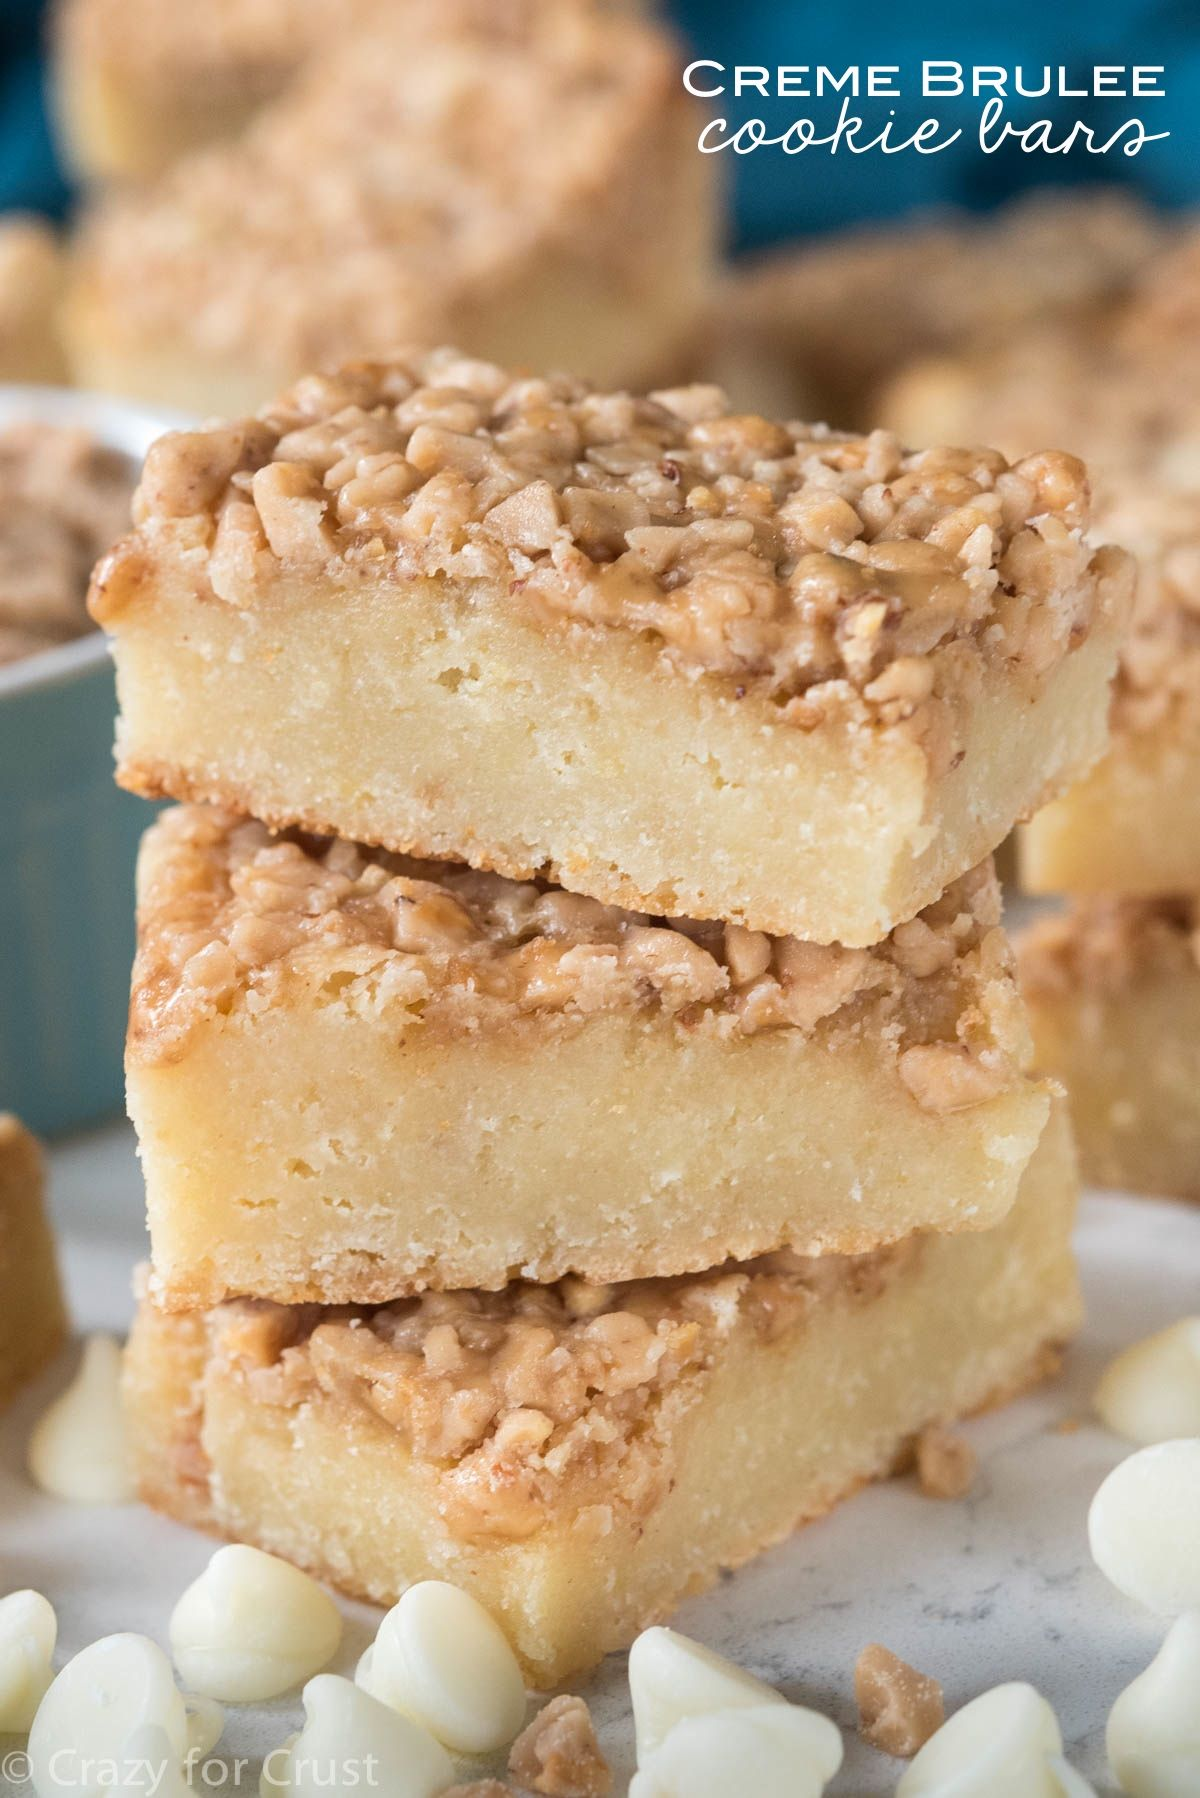 Creme Brulee Cookie Bars Crazy For Crust Recipe Cookie Bar Recipes Dessert Bar Recipe Desserts